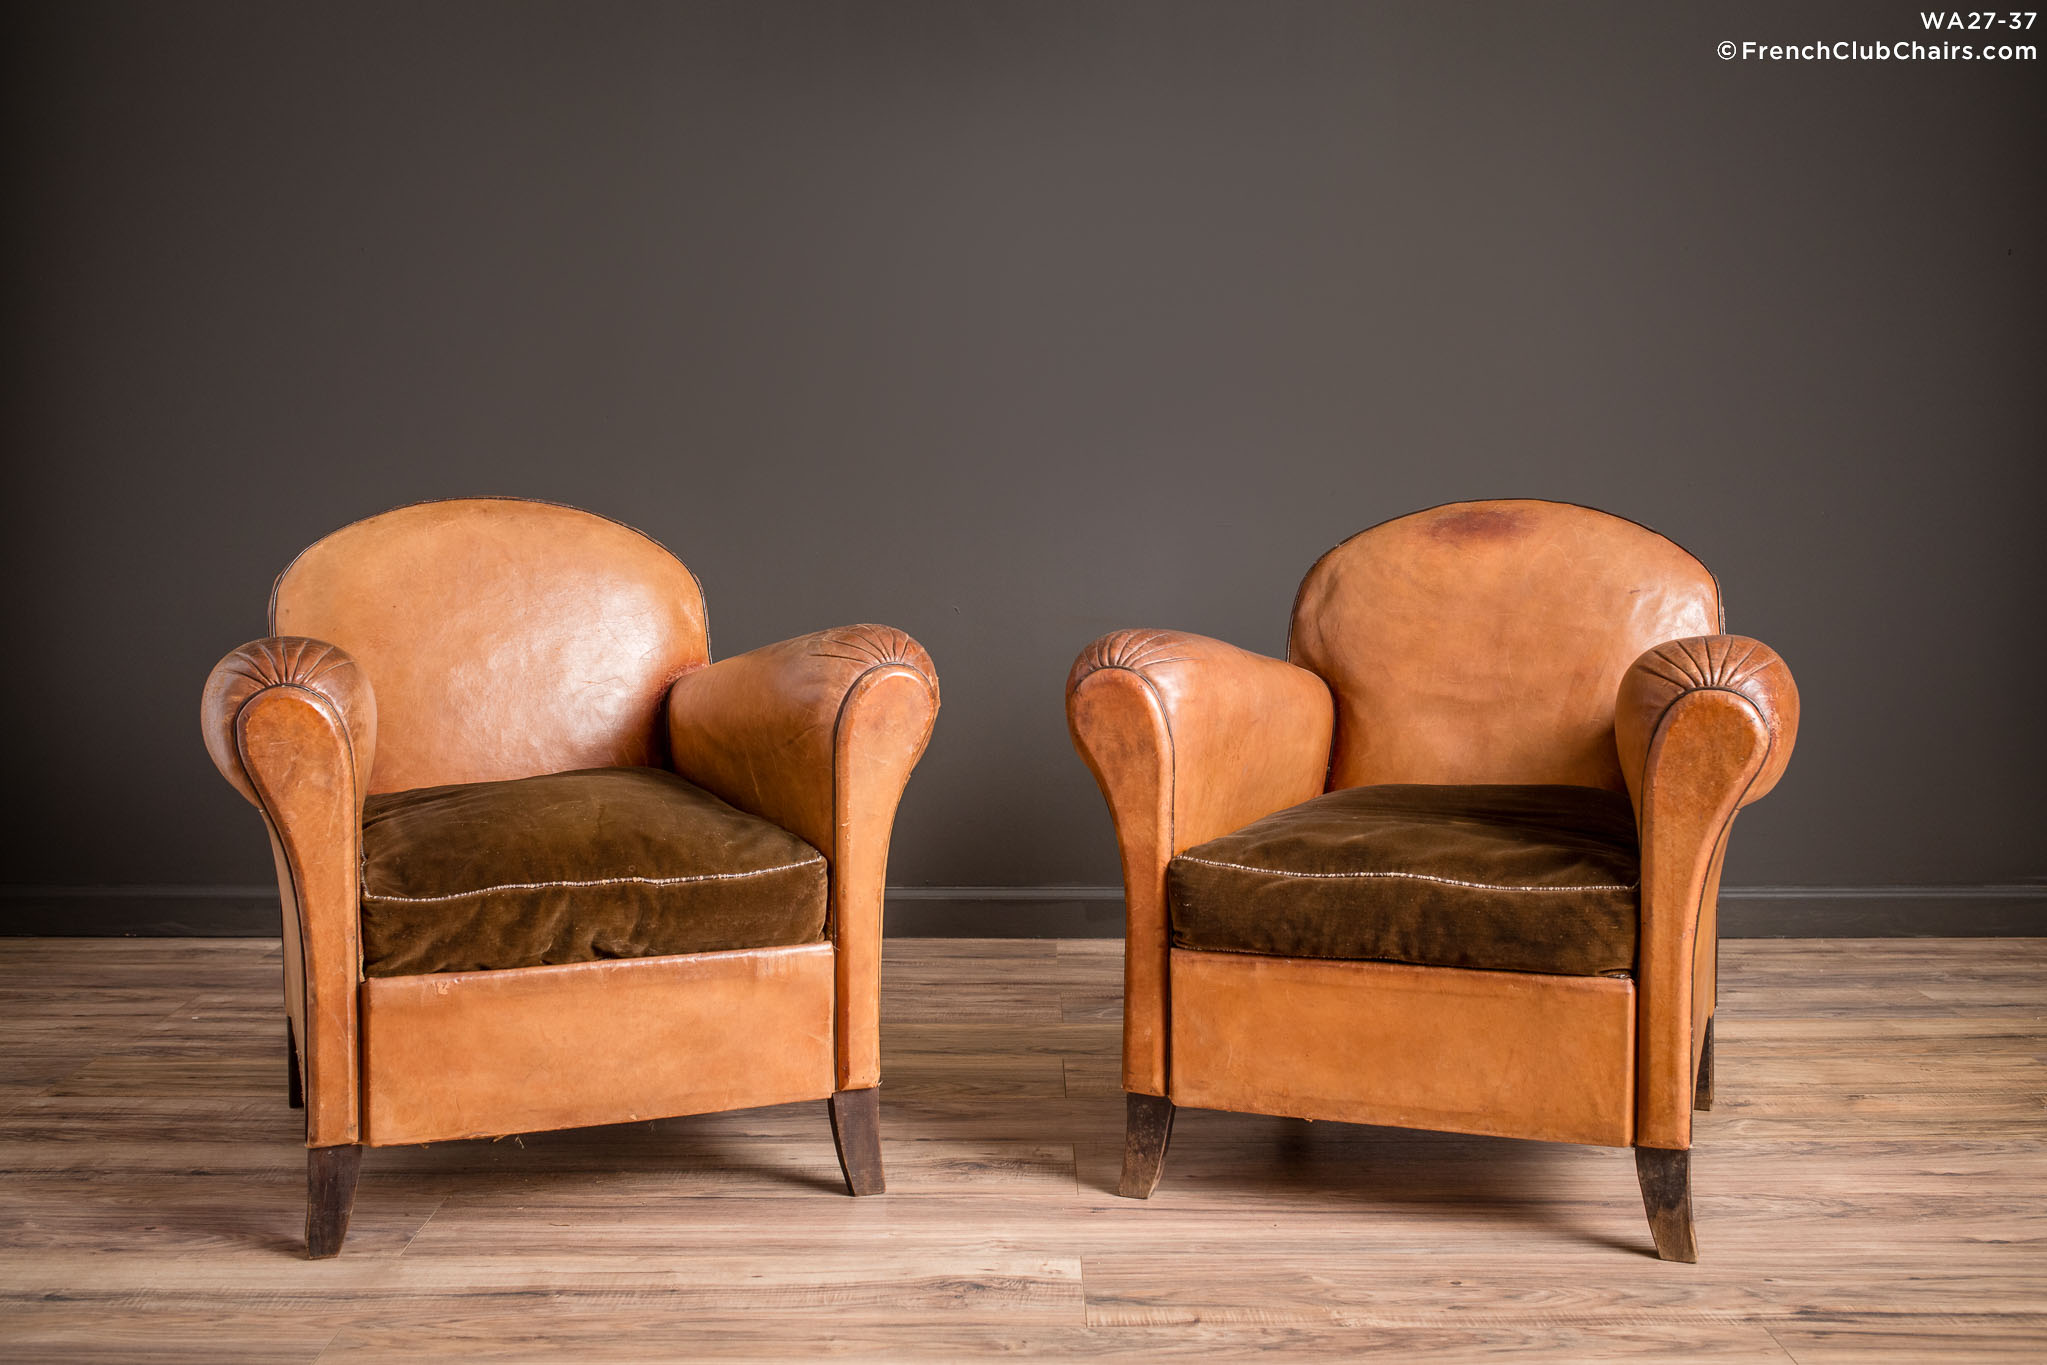 WA_27-37_Petite_Cinema_Etretat_Pair_R_1TQ-v01-williams-antiks-leather-french-club-chair-wa_fcccom